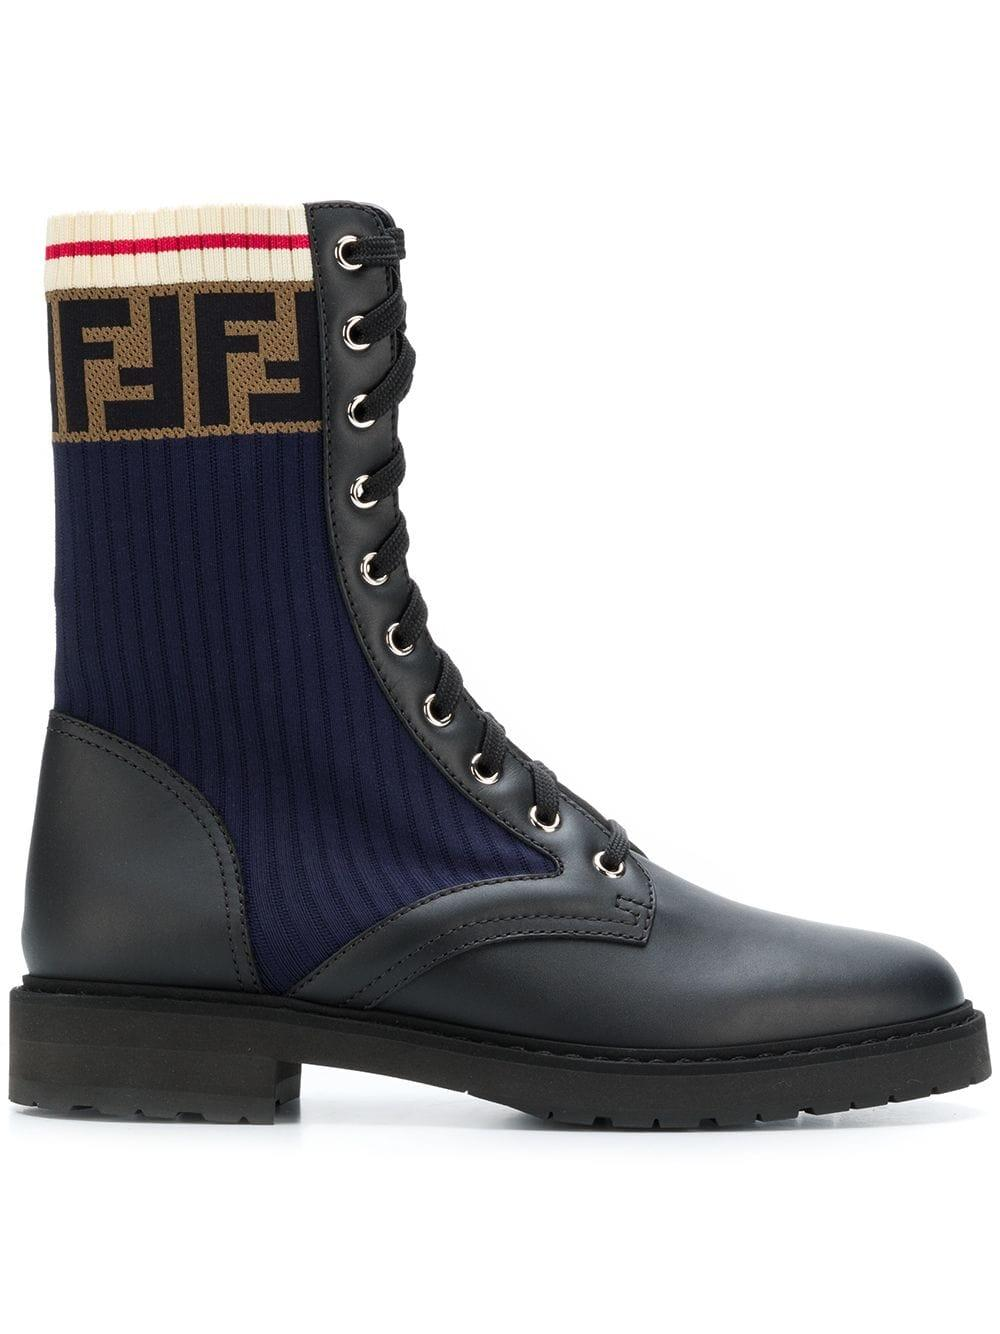 f9038cf8689 Fendi Logo-Jacquard Stretch-Knit And Leather Ankle Boots In Black ...